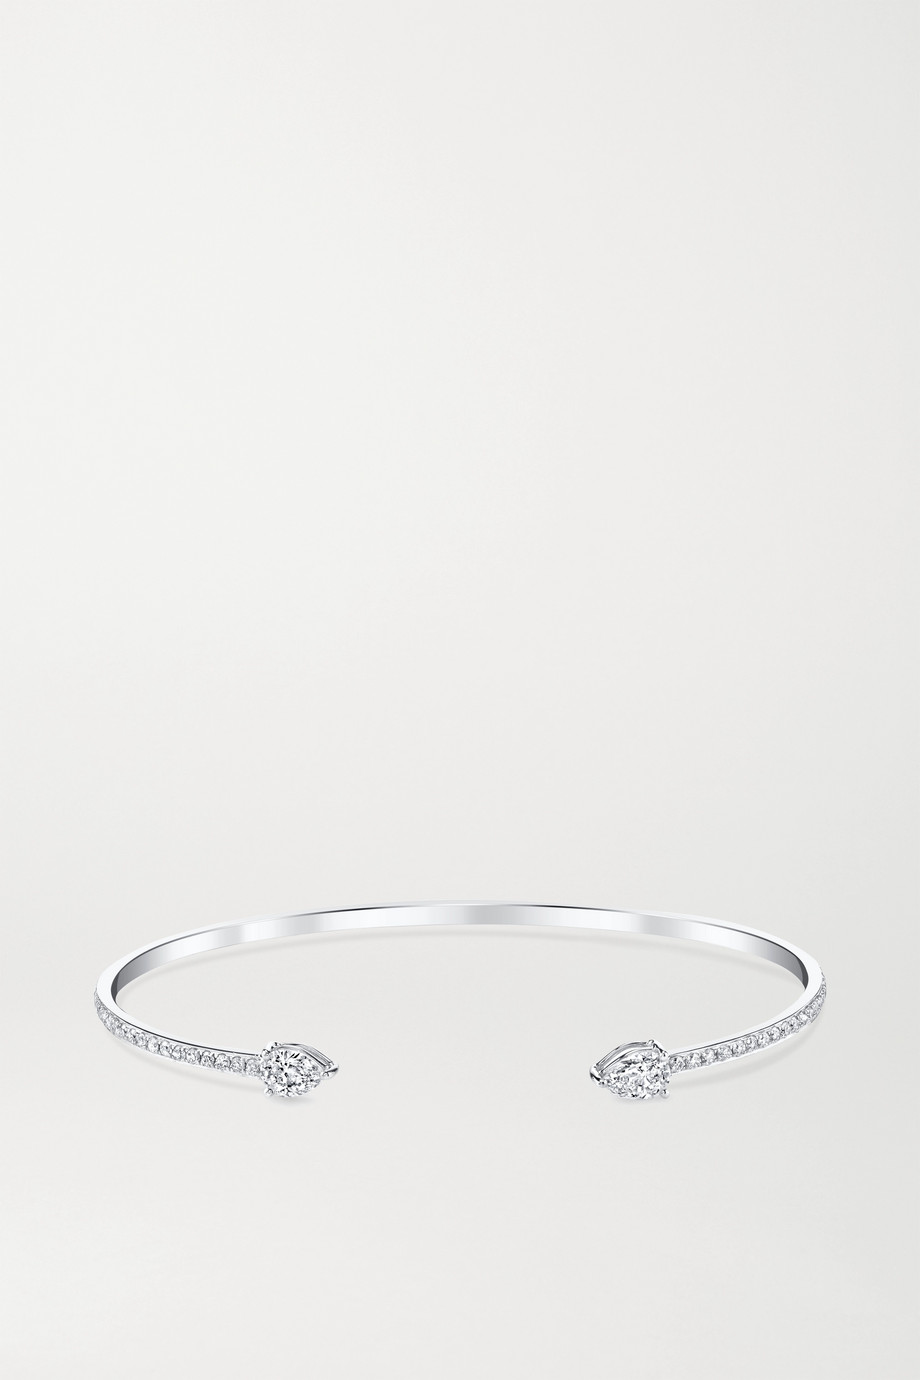 Anita Ko 18-karat white gold diamond cuff